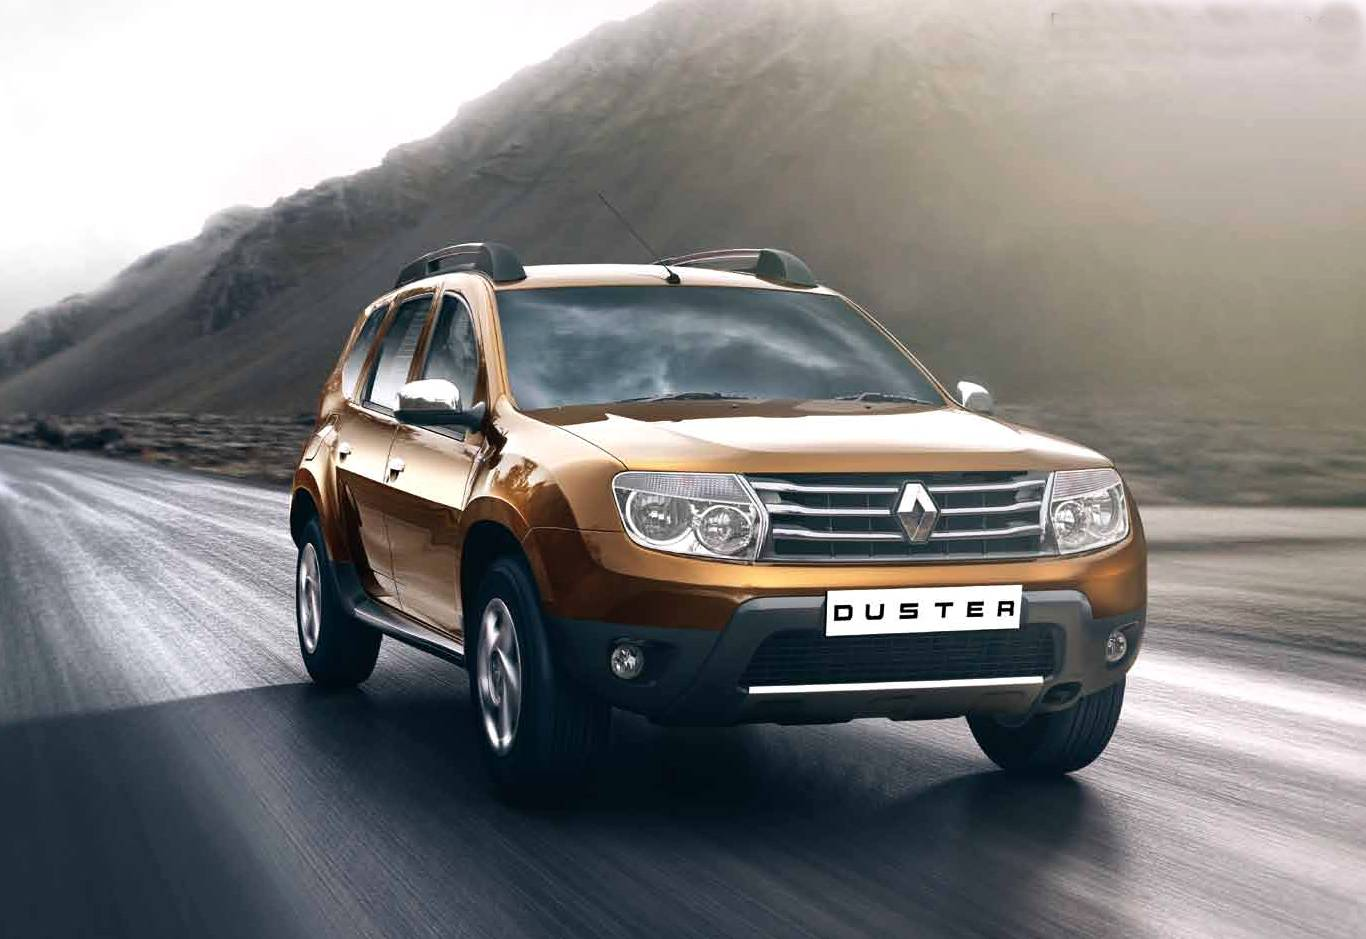 Free wallpaper download renault duster wallpaper renault duster hd wallpapers voltagebd Image collections